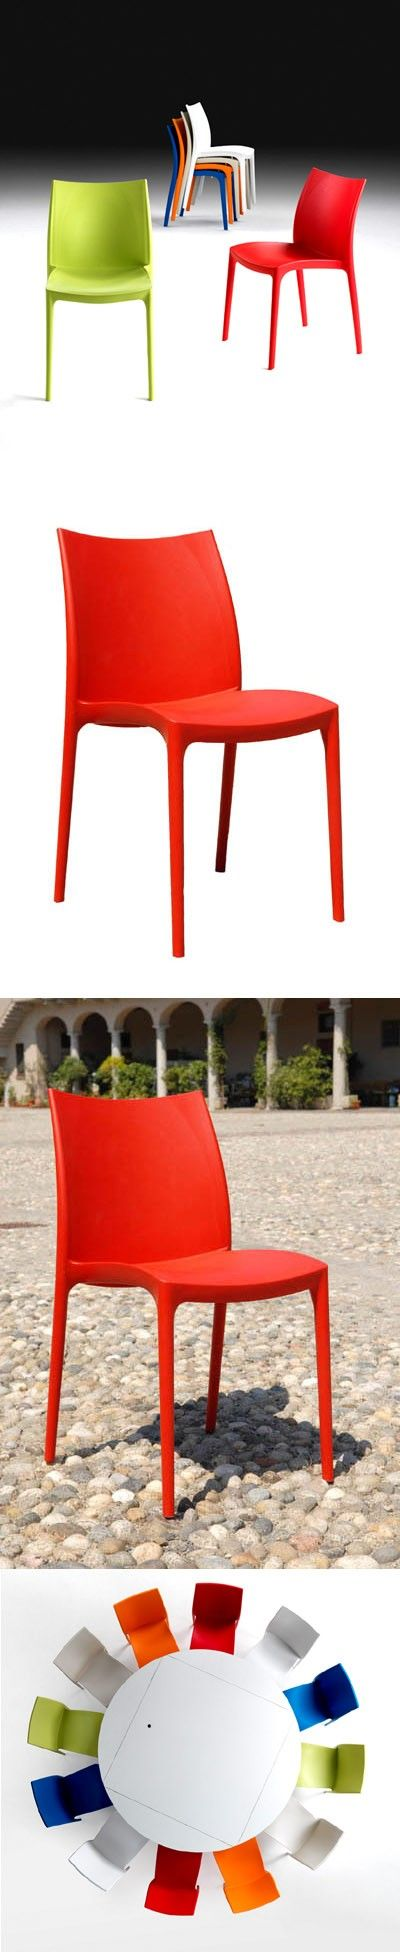 Brio Chair | Thonet